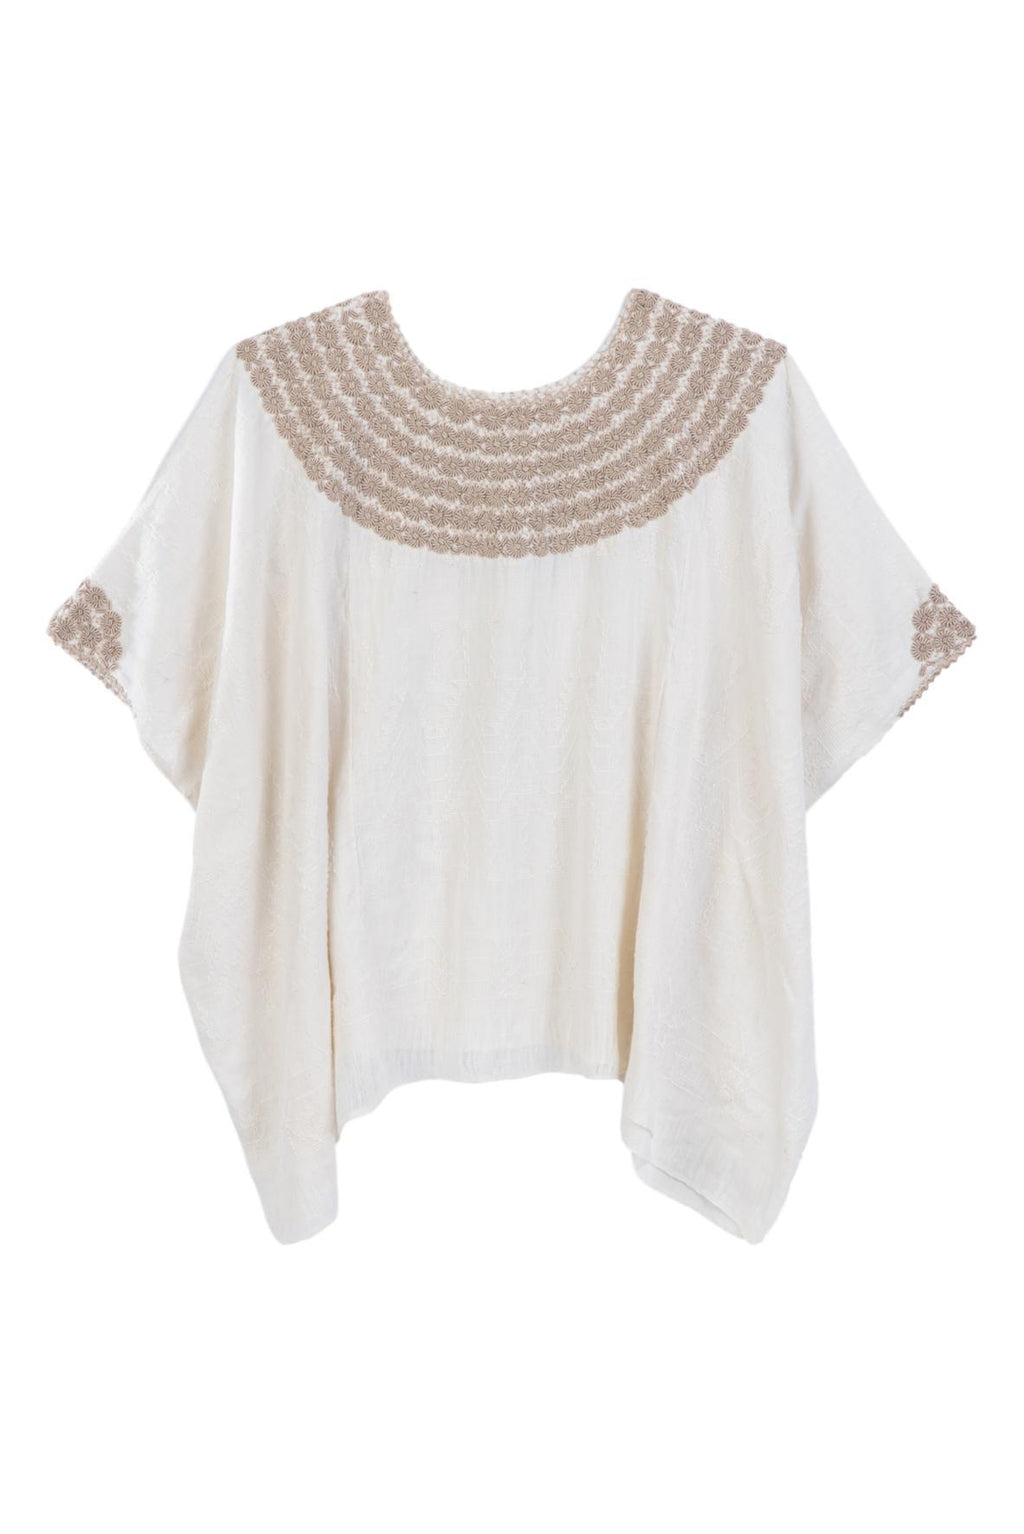 Hand-loomed and hand-embroidered tunic ivory blouse